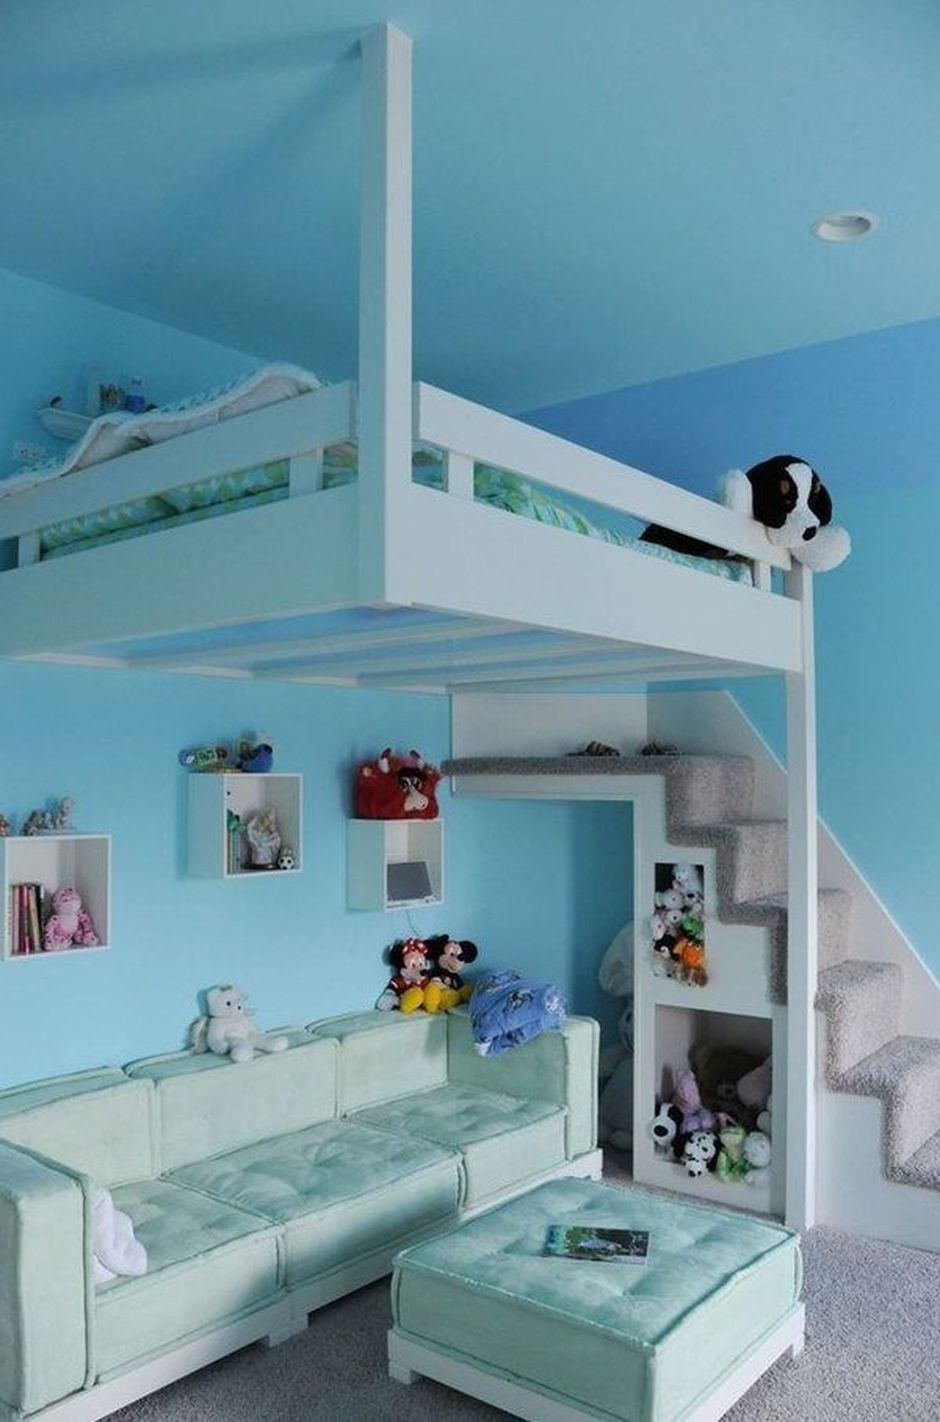 Cool Loft Bed Design Ideas For Small Room 15 Rockindeco